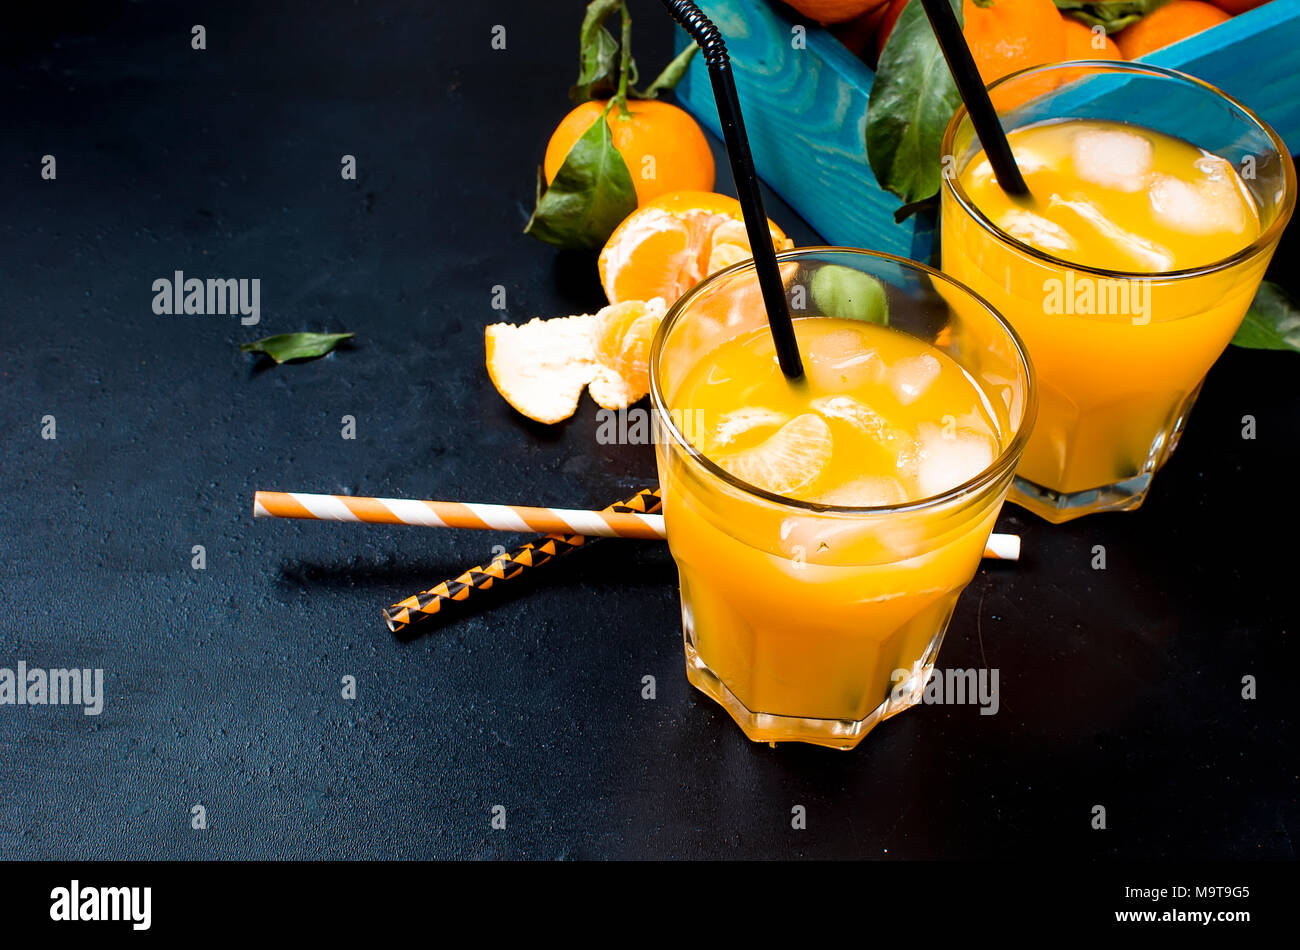 refreshing cocktail with tangerines, juice and ice in two glasses on a black background, alcoholic drink, copy space - Stock Image